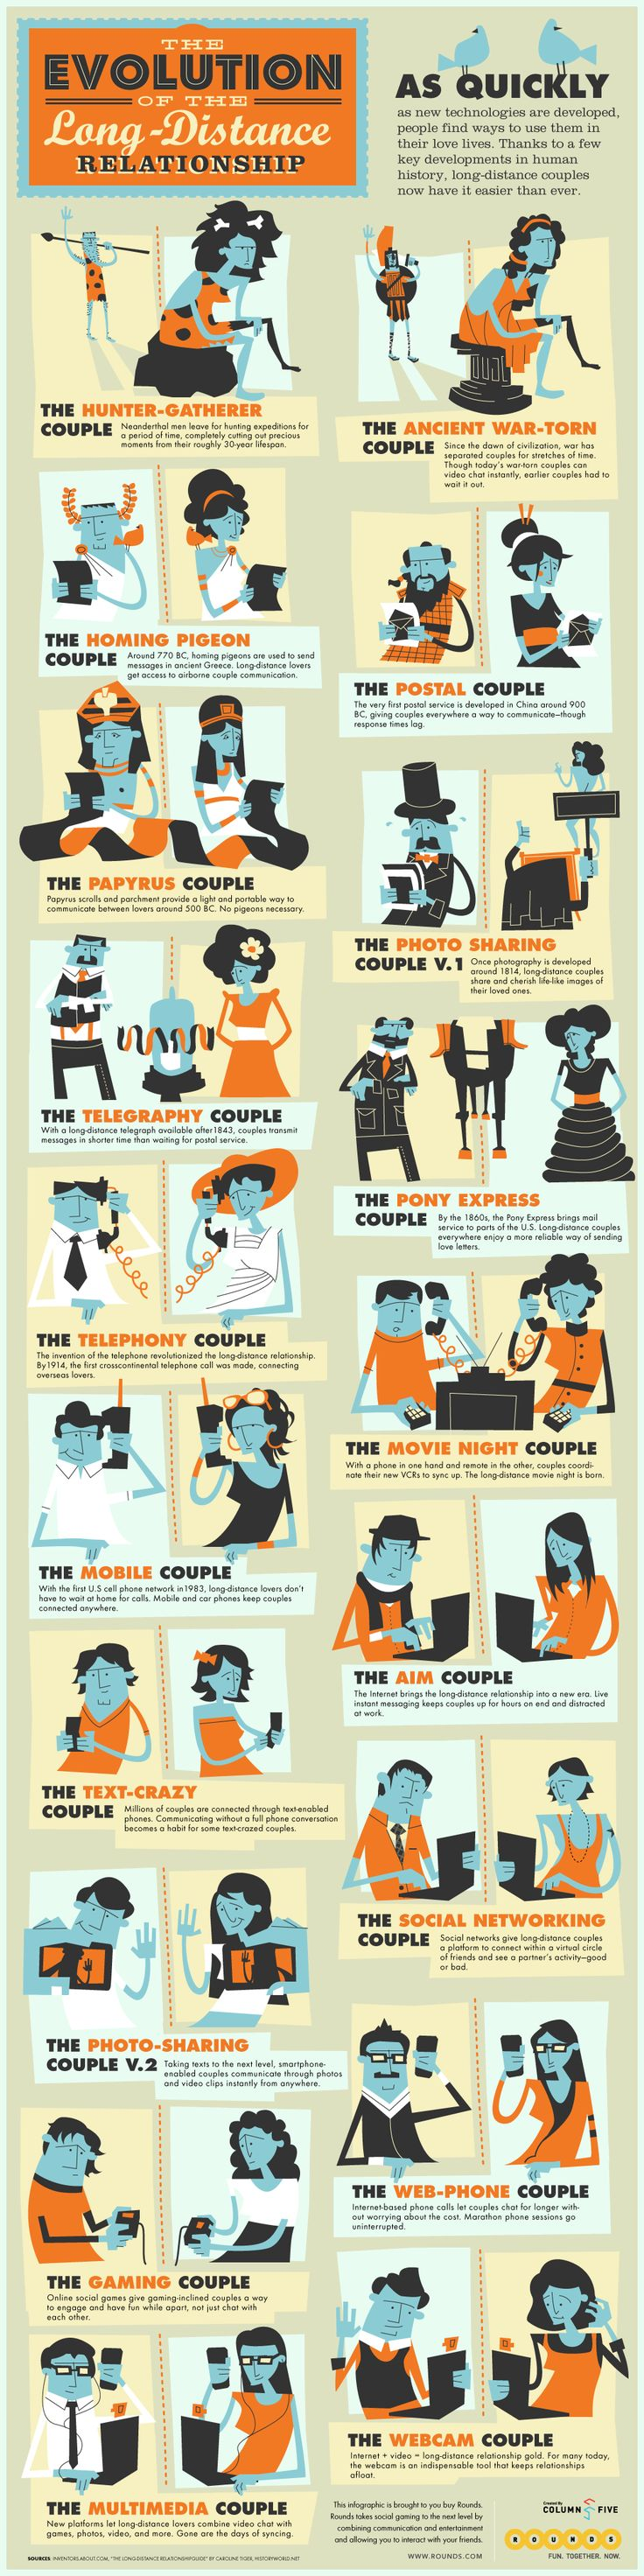 The Evolution of Long Distance Relationships [INFOGRAPHIC]